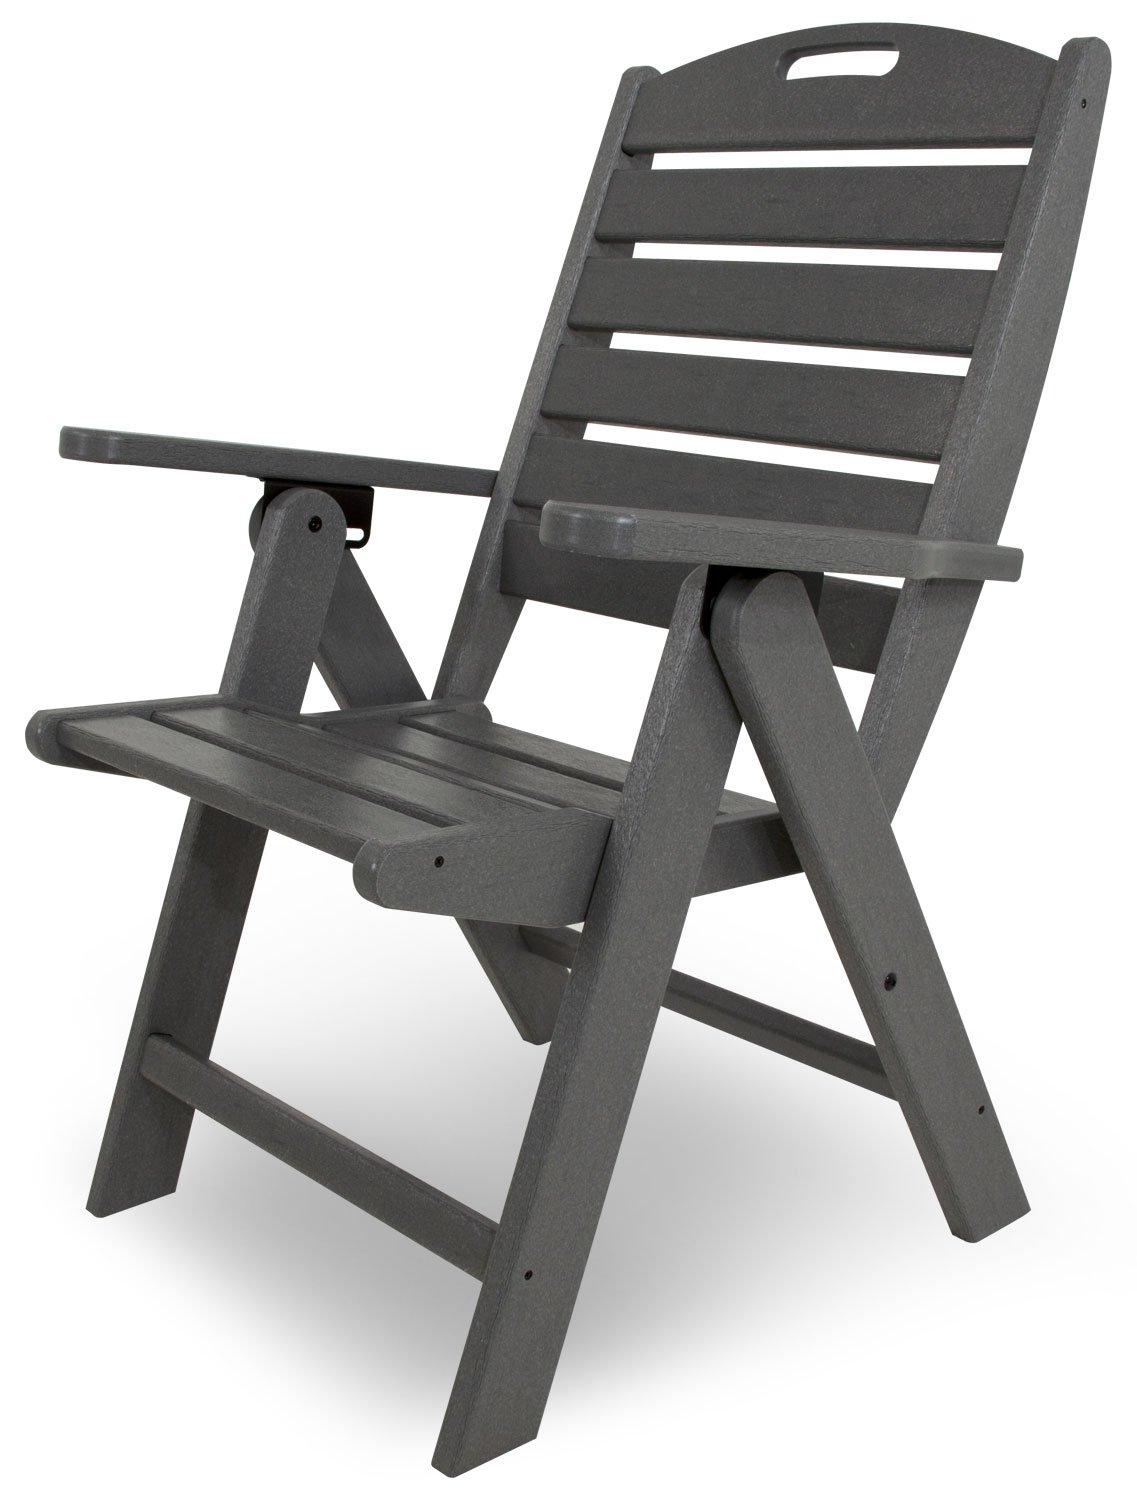 amazoncom polywood nch38gy nautical highback chair slate grey adirondack chairs garden u0026 outdoor